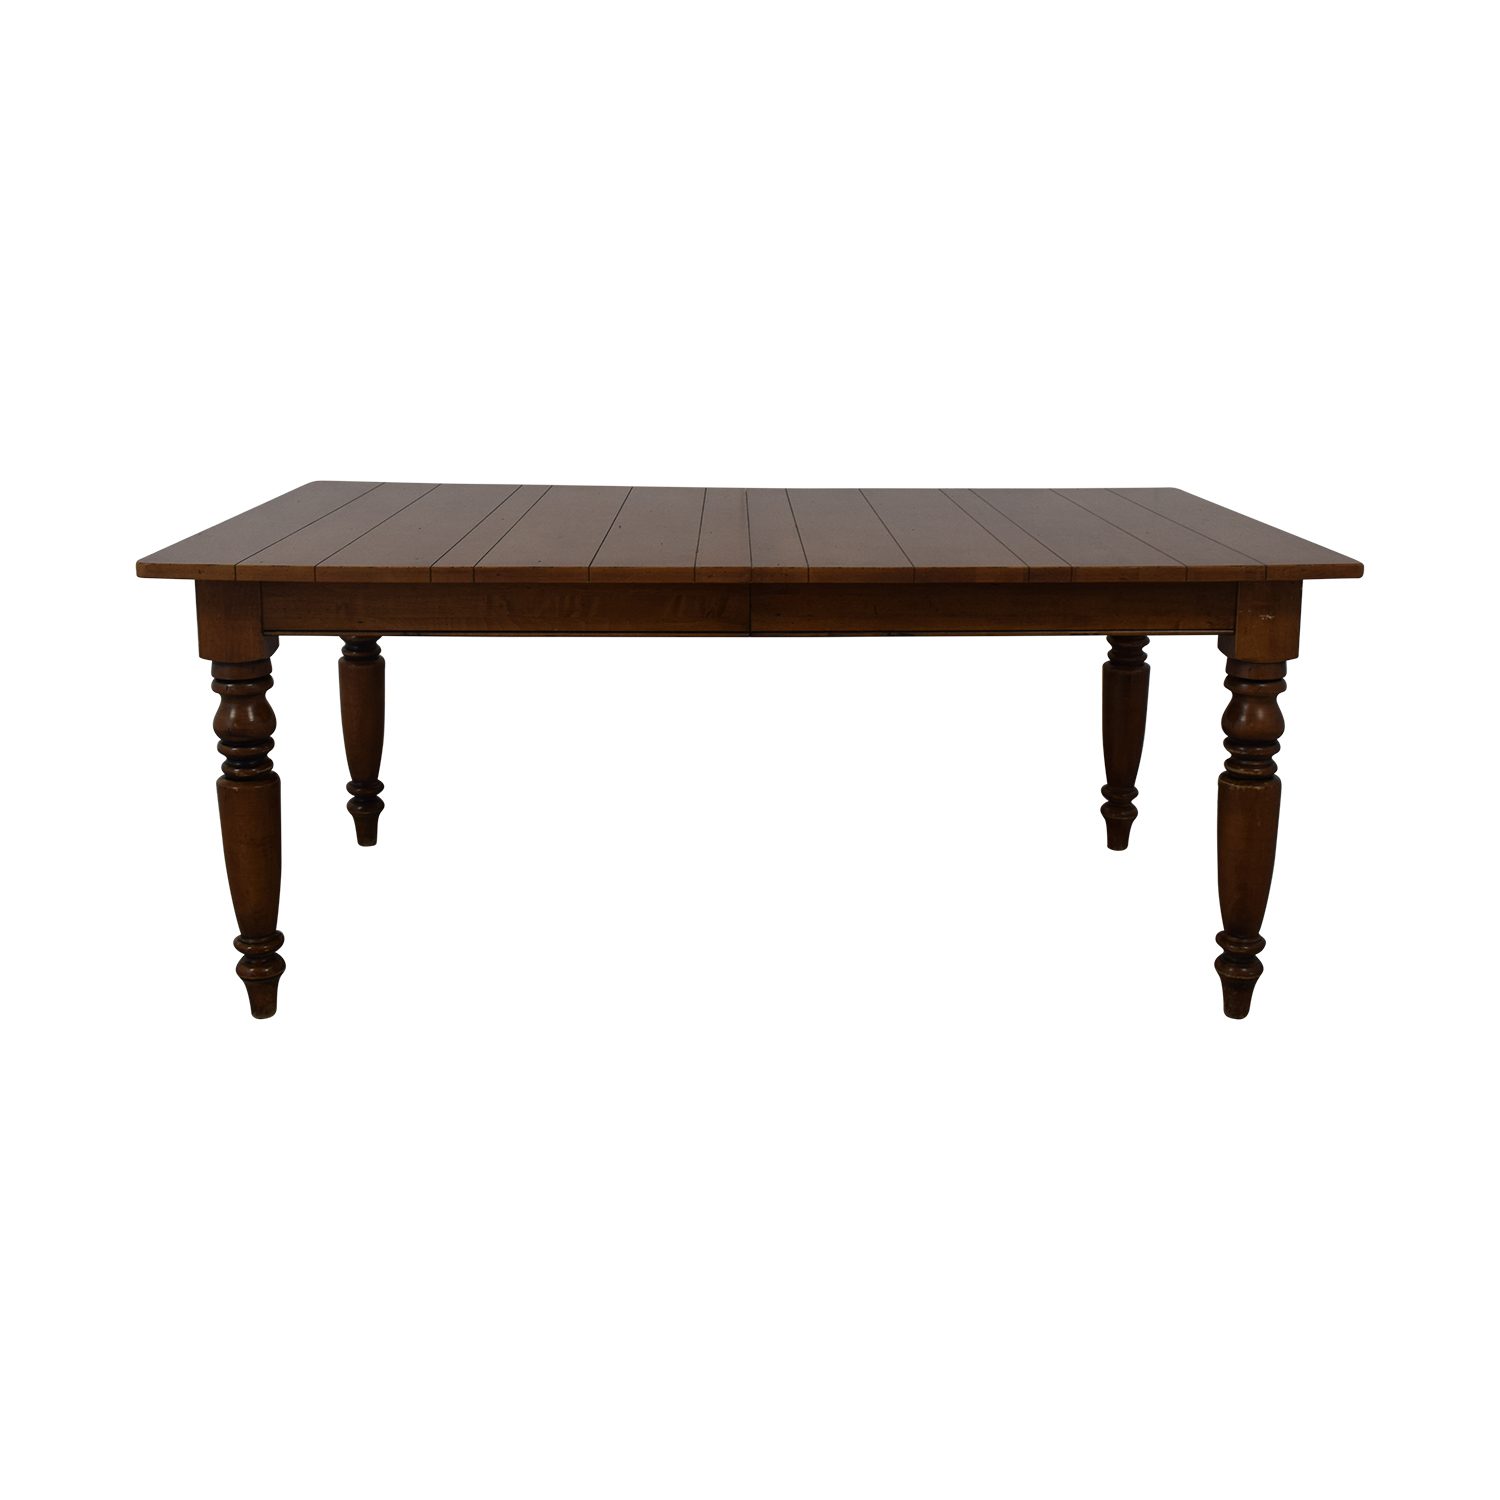 Ethan Allen Ethan Allen Miller Dining Room Table Tables